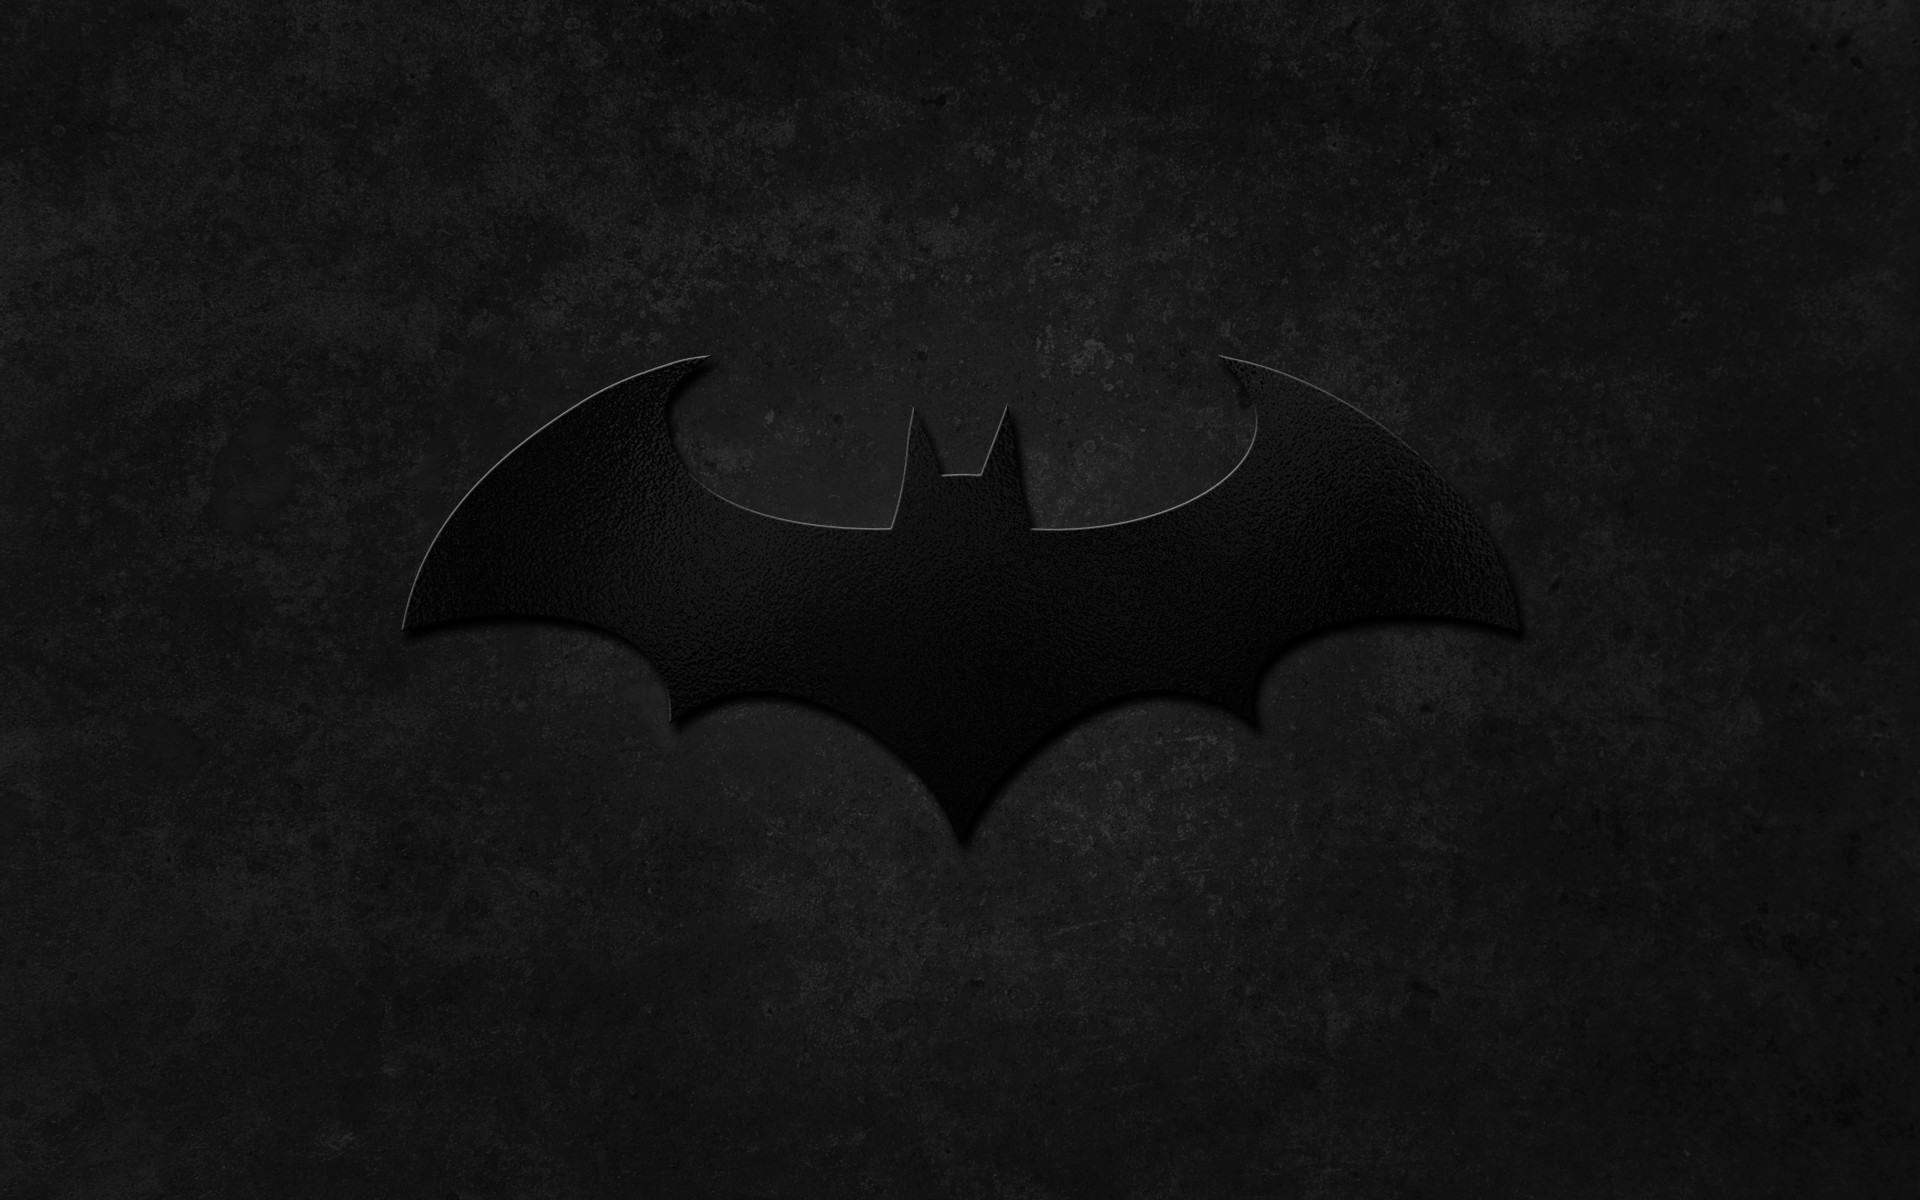 Dark knight logo wallpaper 1920x1200 batman logo wallpapers for free download hd p hd wallpapers pinterest wallpaper logos and hd wallpaper thecheapjerseys Gallery